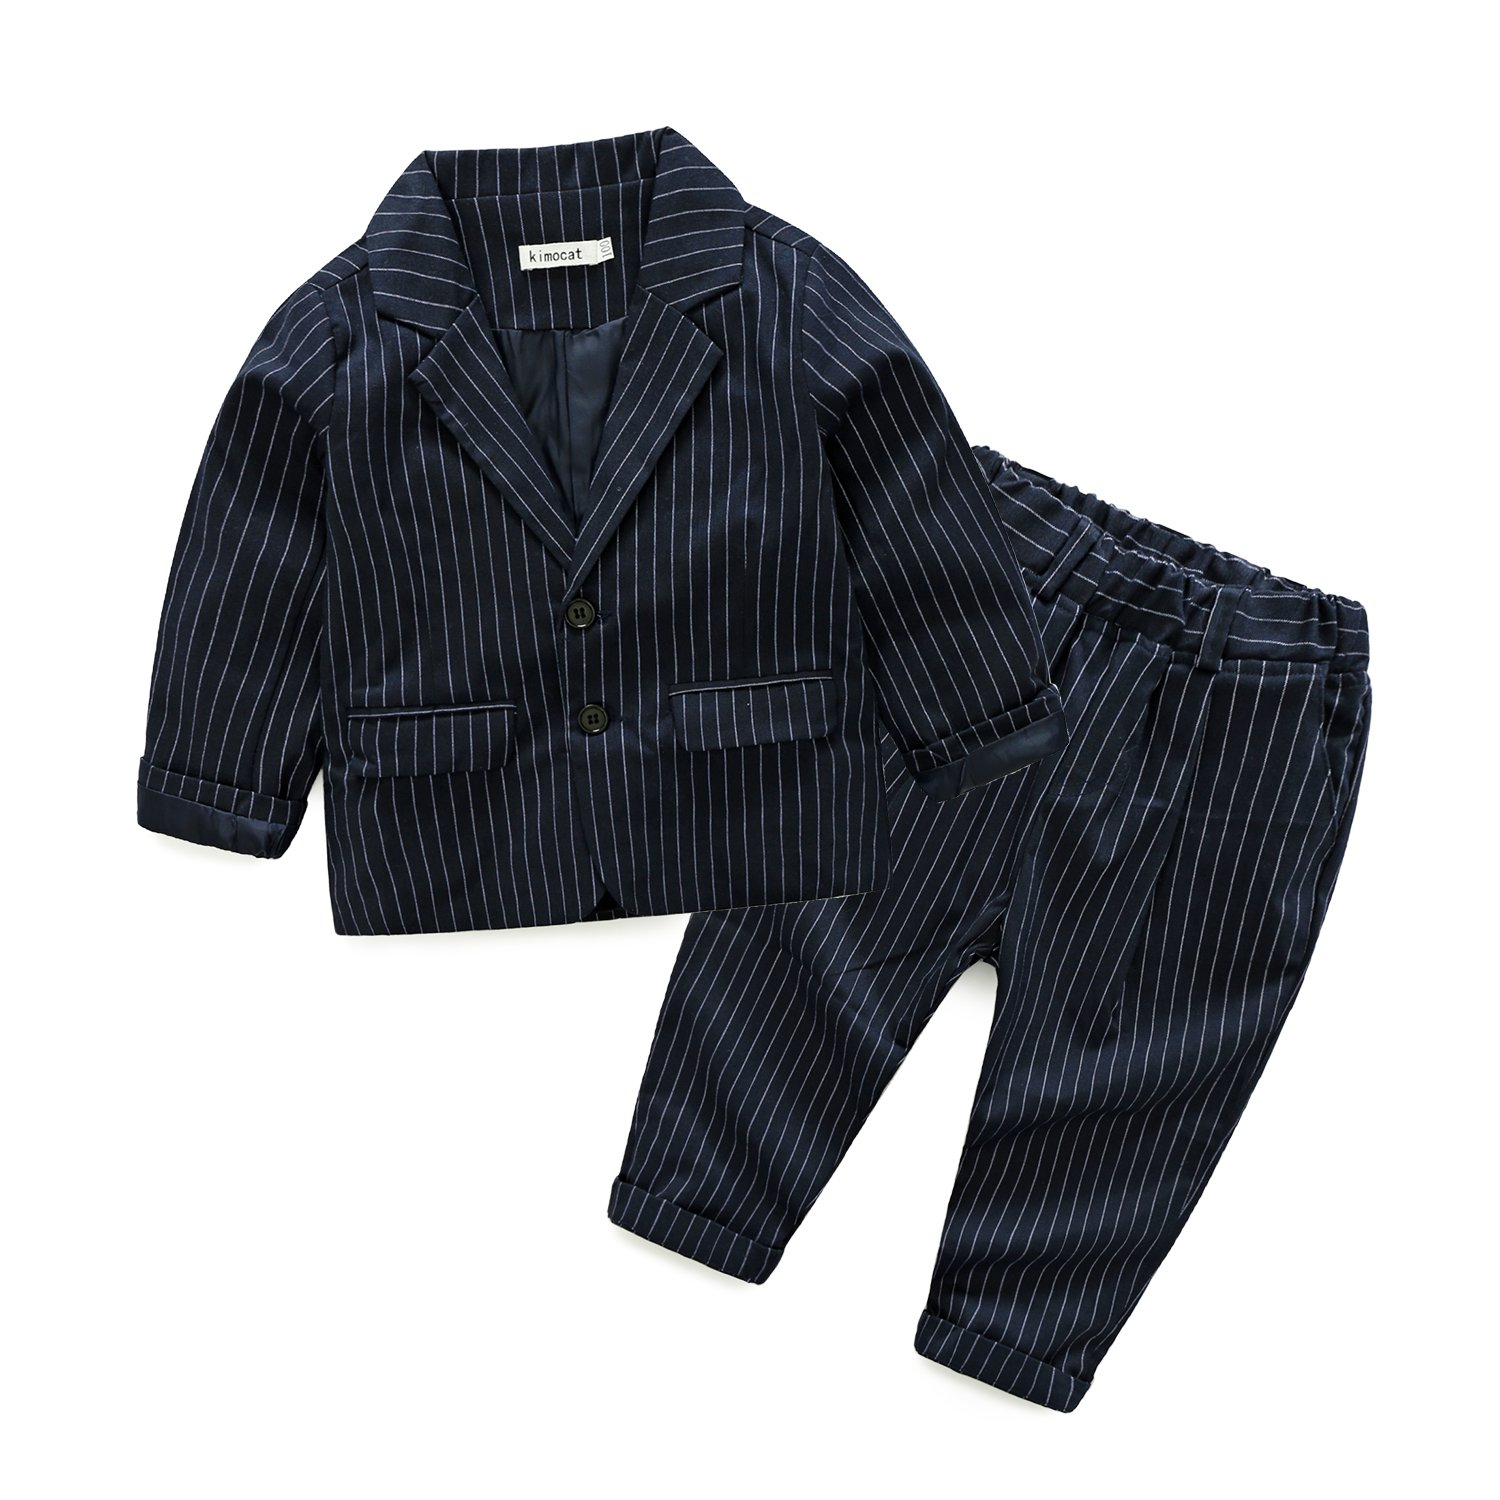 Pinstripe Suit Set for Boys Formal Dresswear Cotton Jacket and Pant, Black & Navy Blue, 2Y-7Y (4T, Navy Blue)